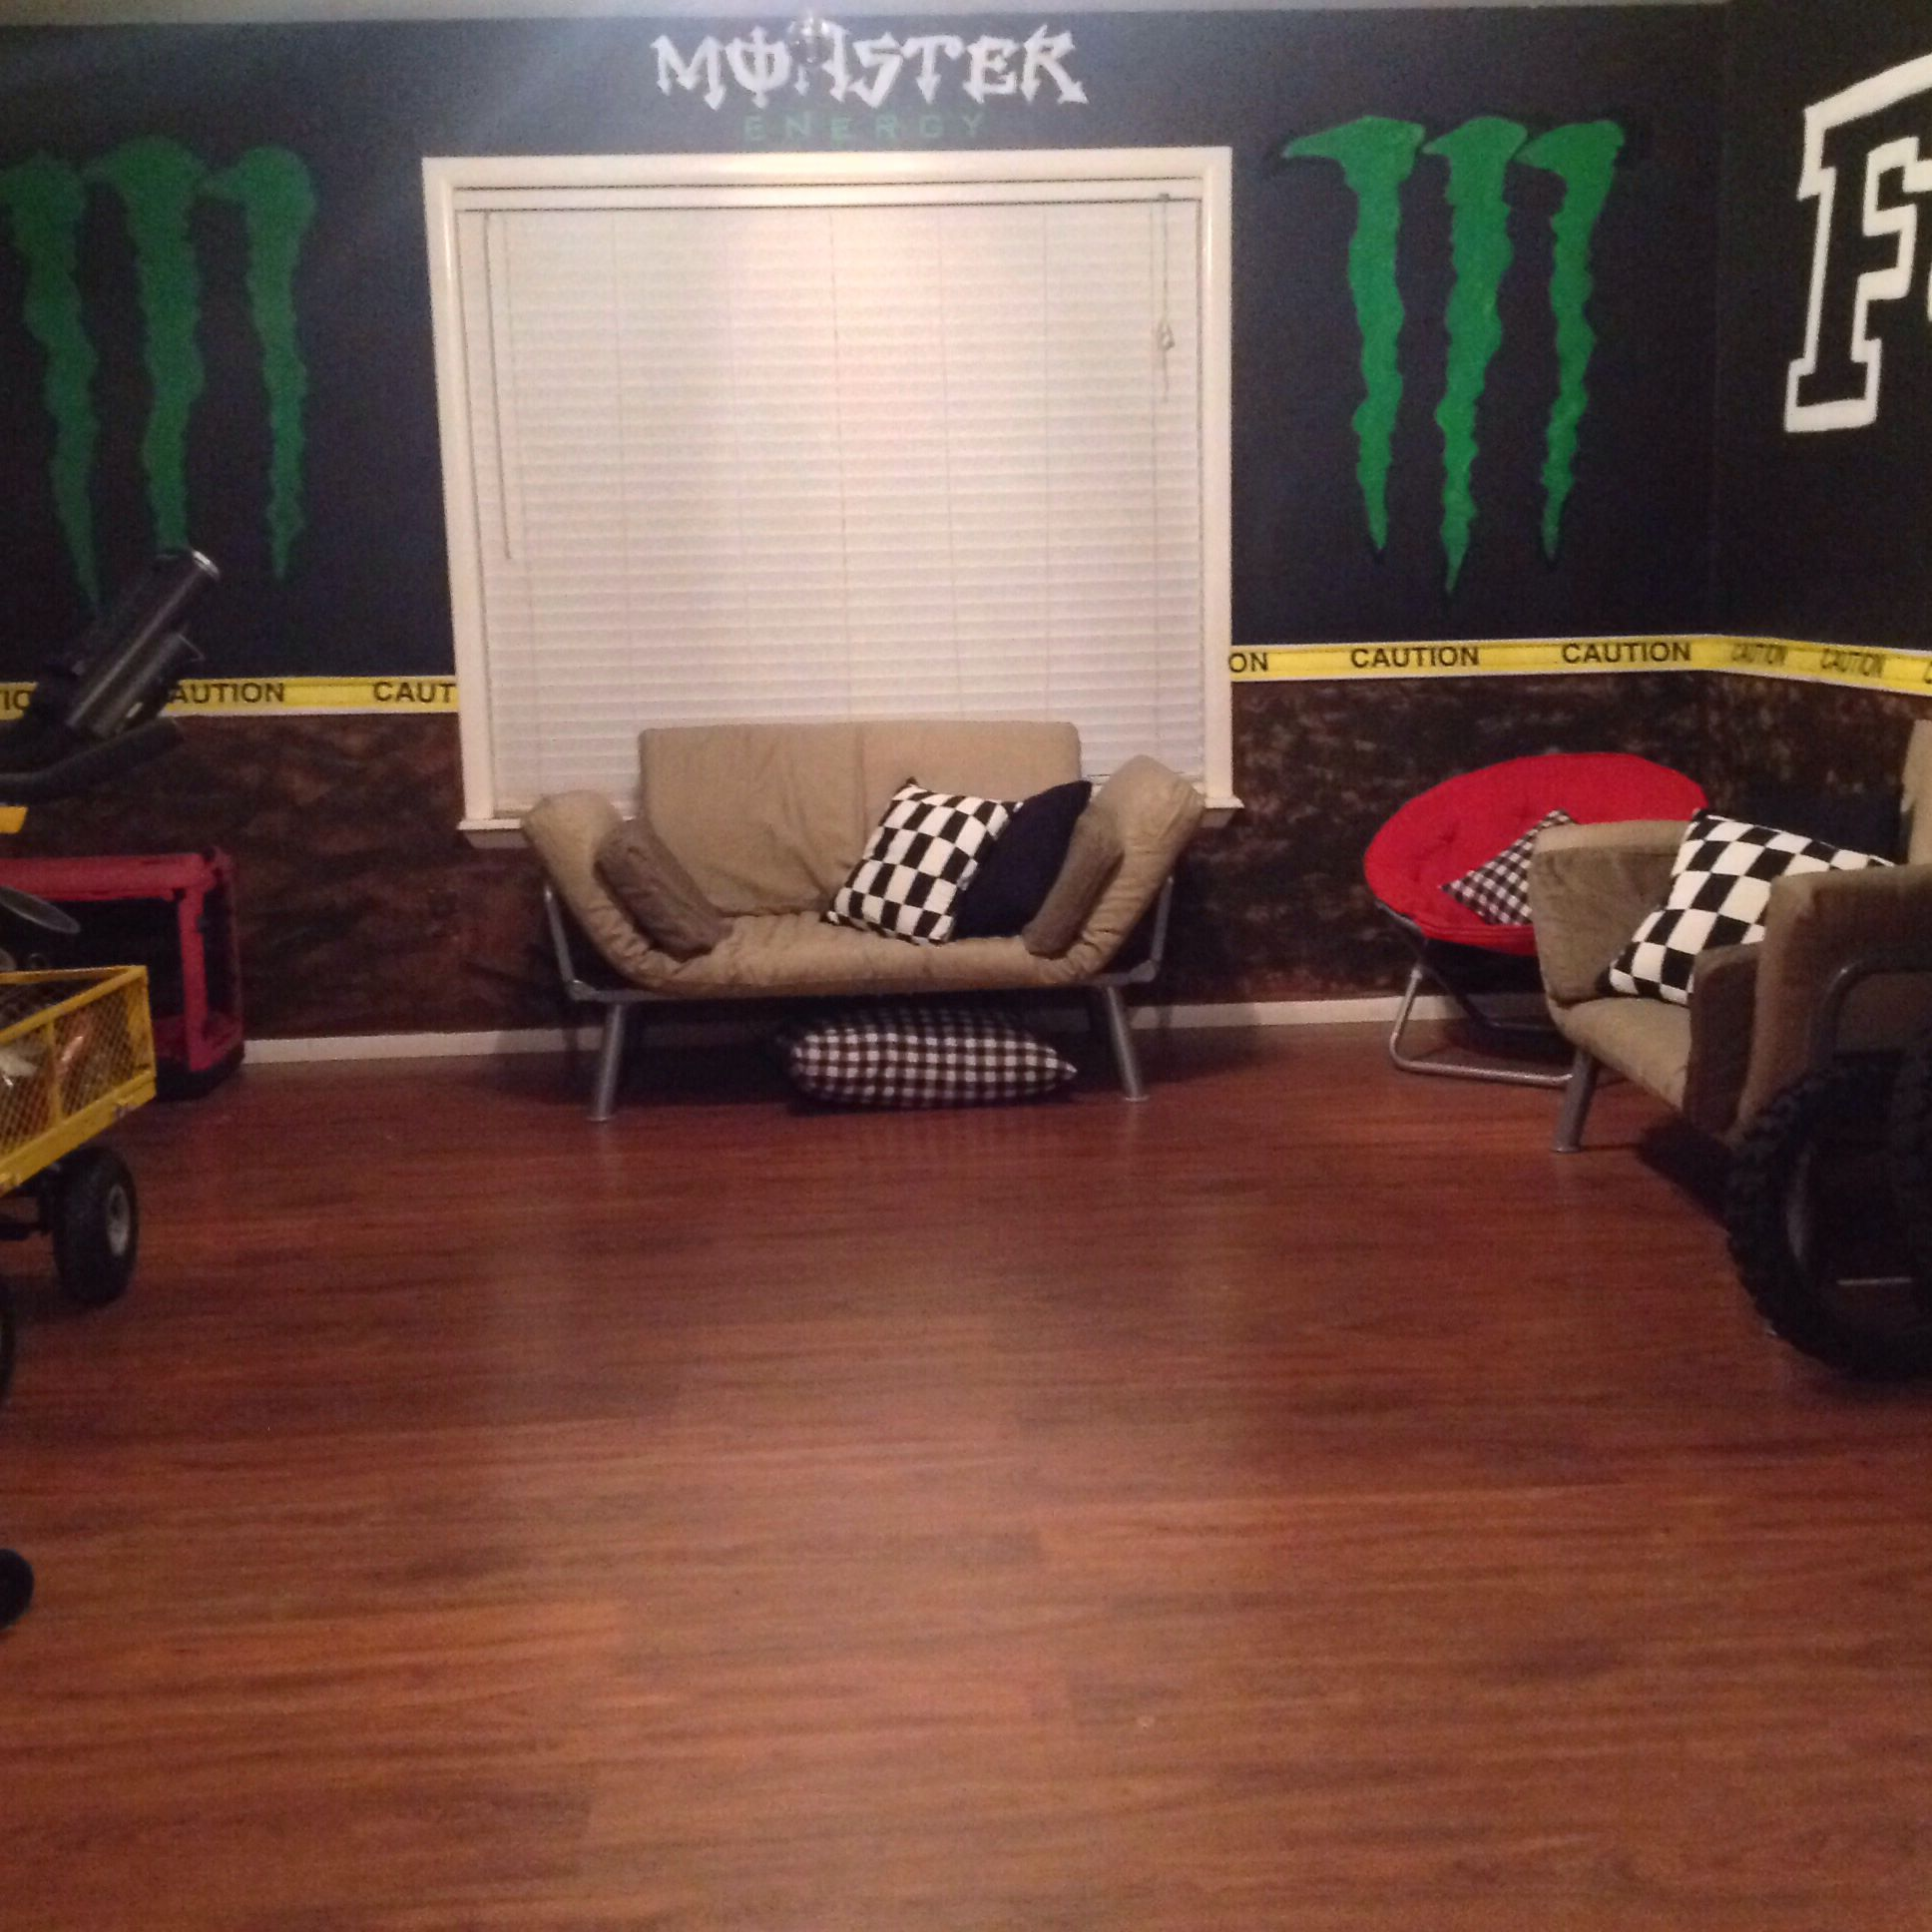 Man Cave Bedroom: My Motocross Man Cave